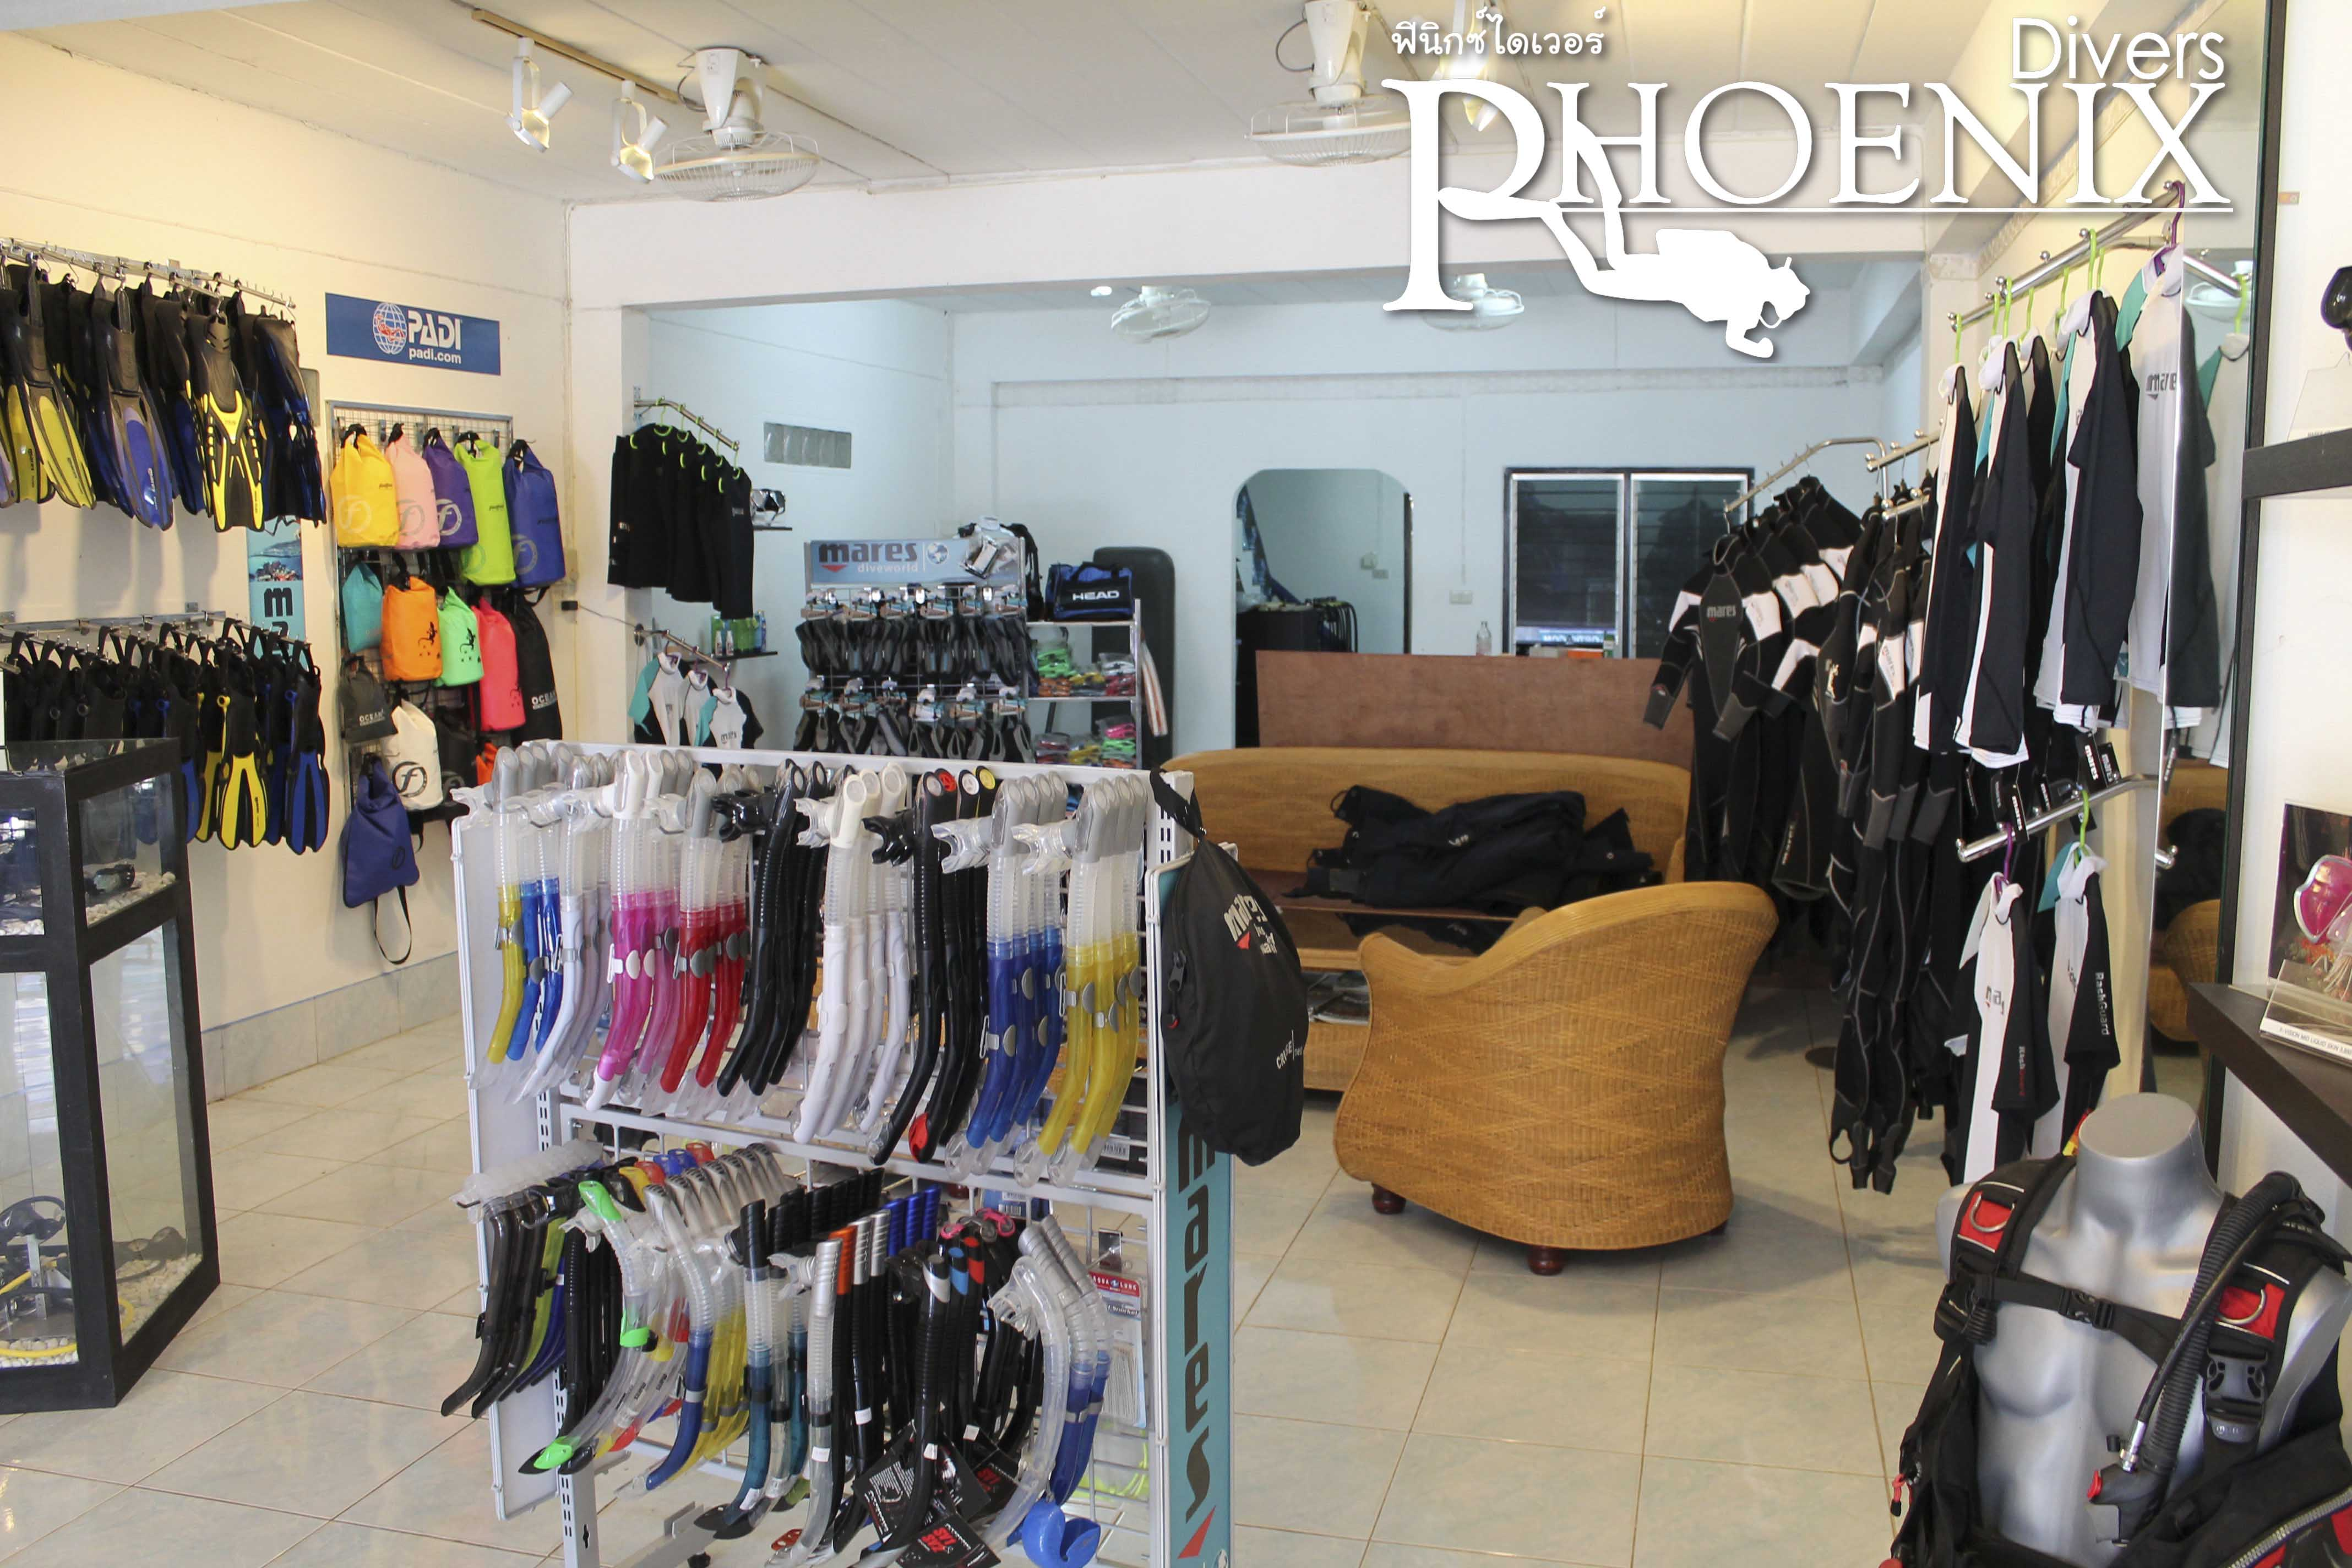 Dive Center For Sale - Well established Padi 5 star dive and freedive center